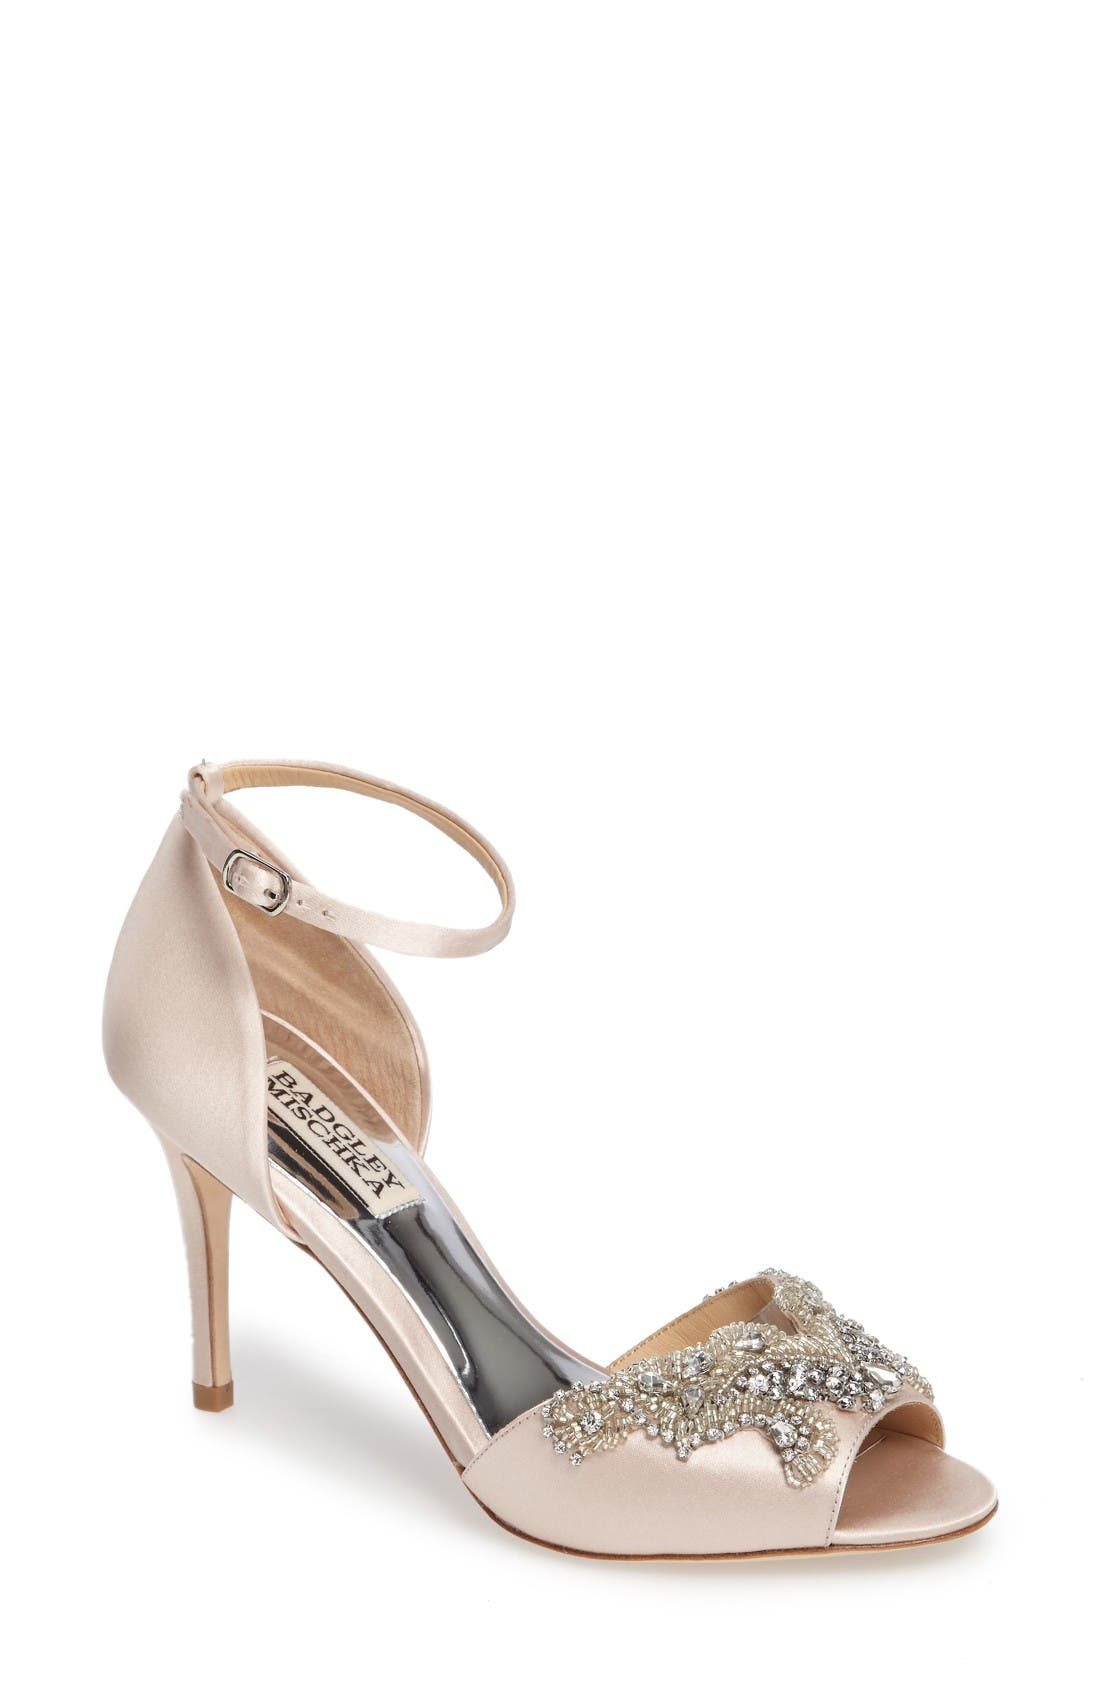 Main Image - Badgley Mischka Barker Ankle Strap d'Orsay Pump (Women)